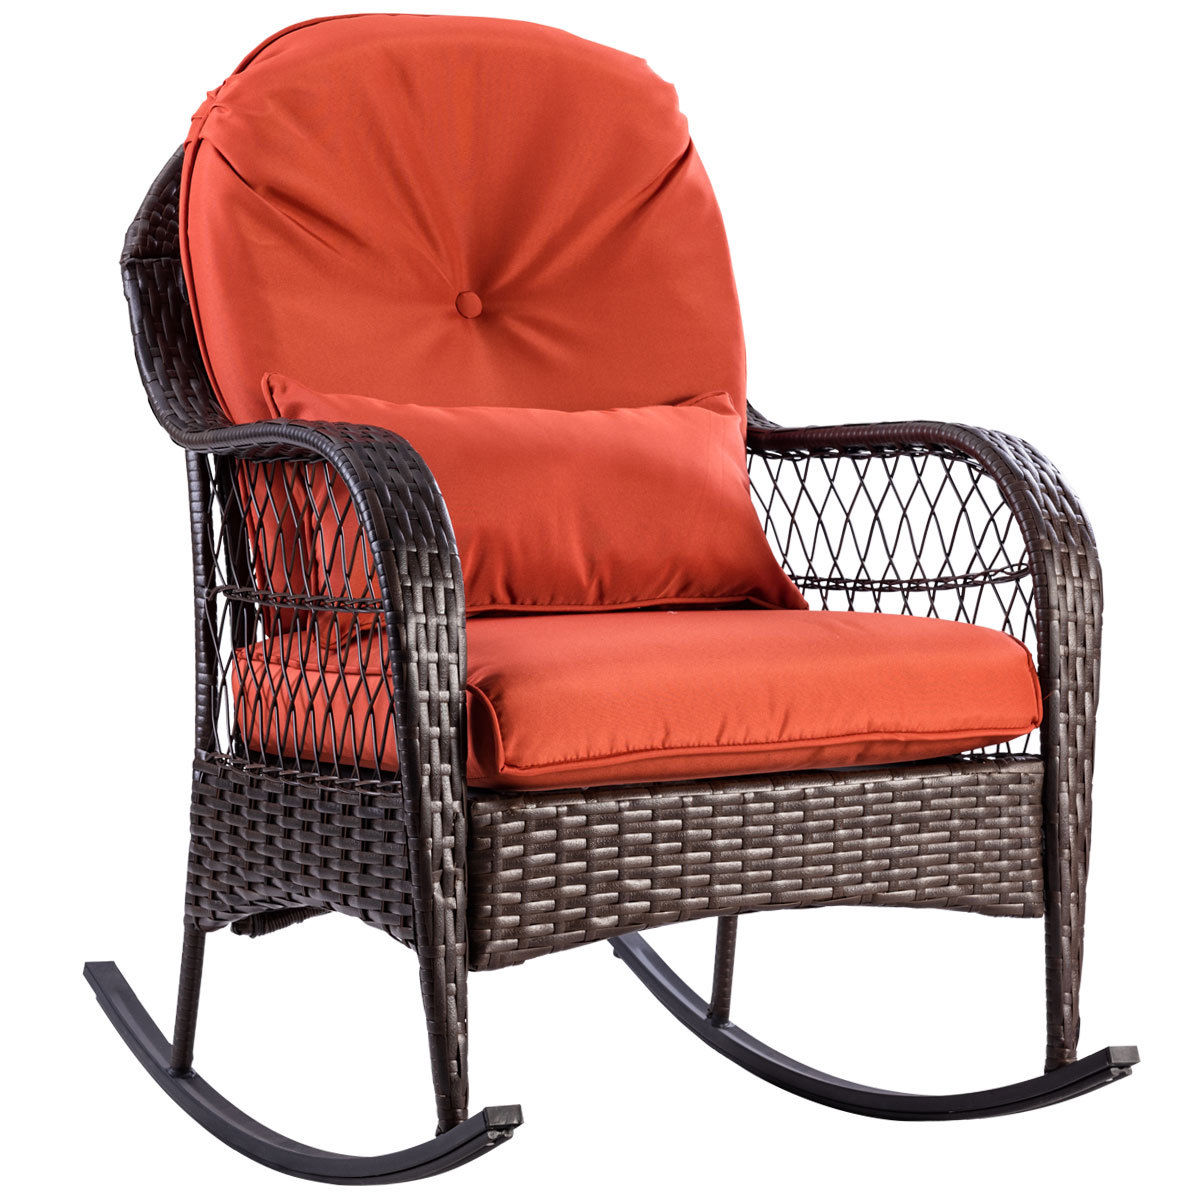 giantex patio rattan wicker rocking chair modern porch deck rocker outdoor furniture with padded. Black Bedroom Furniture Sets. Home Design Ideas